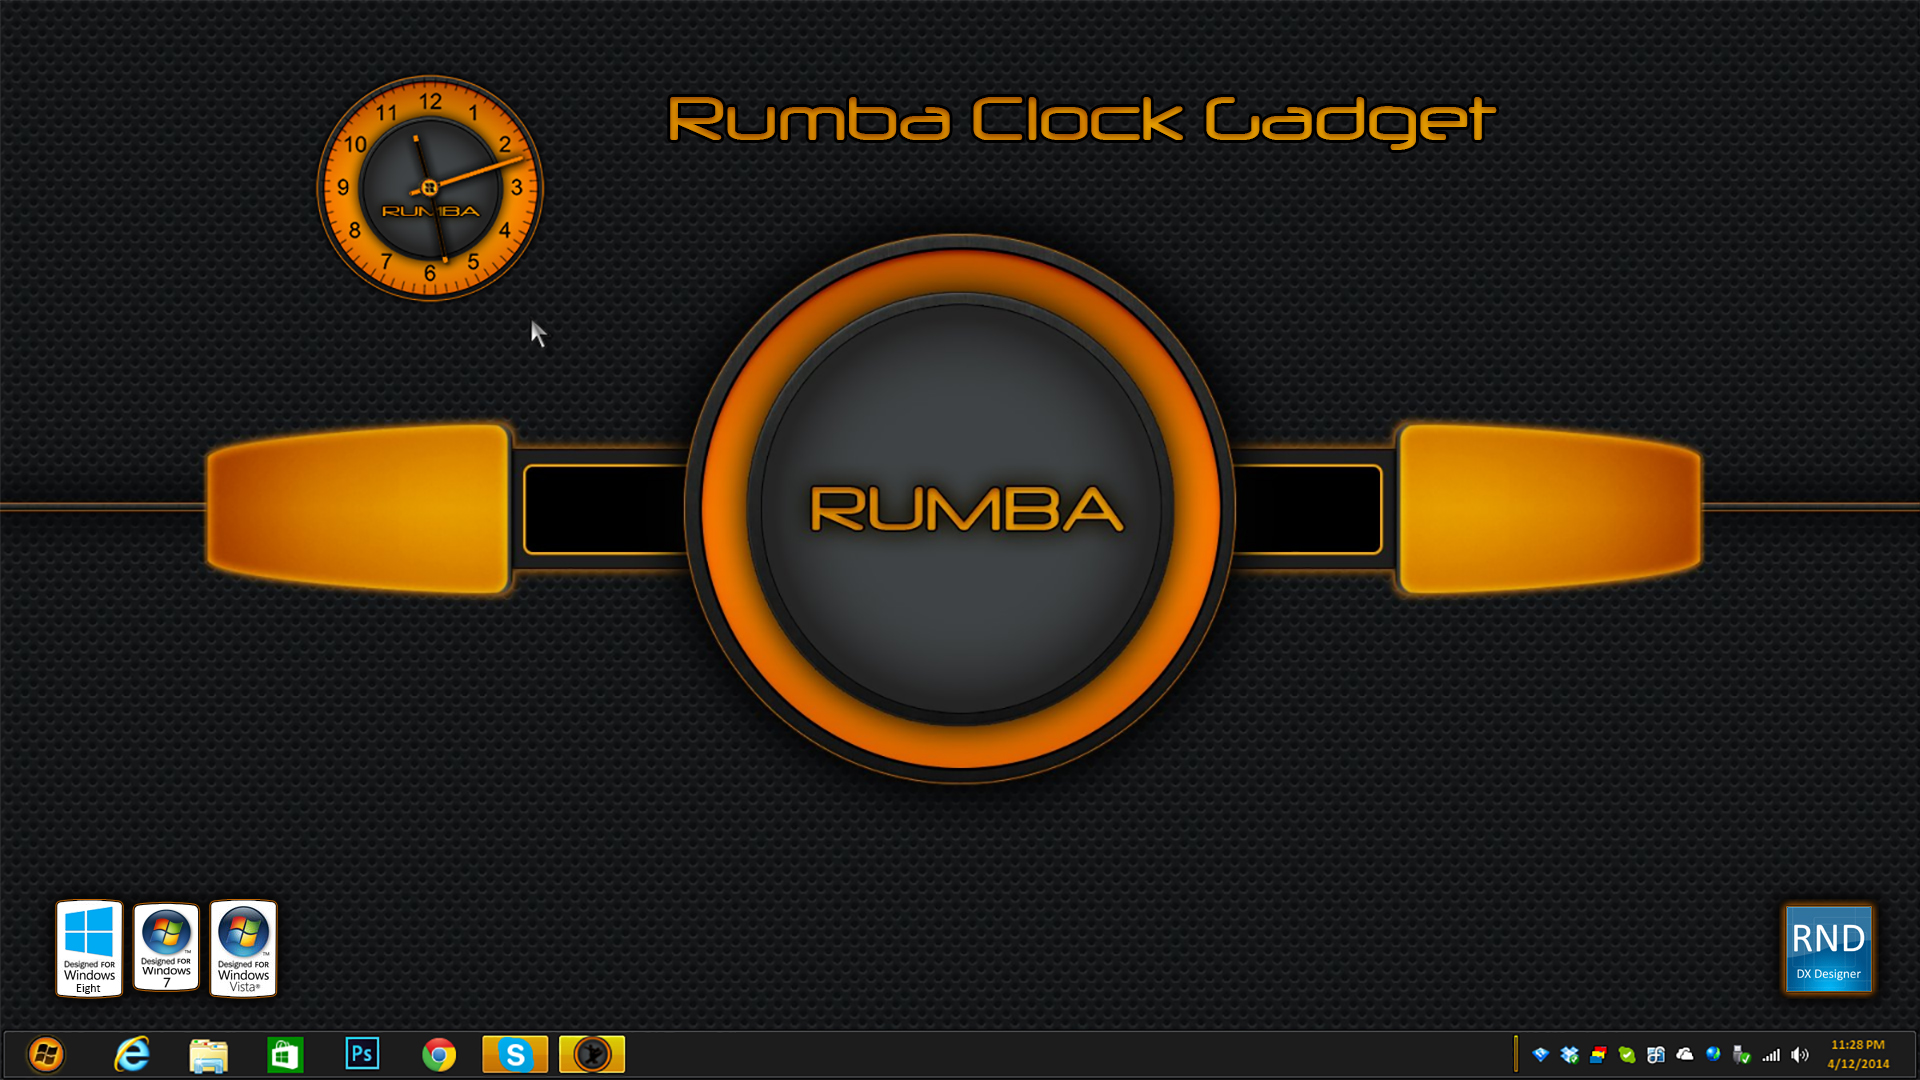 Rumba Clock Gadget